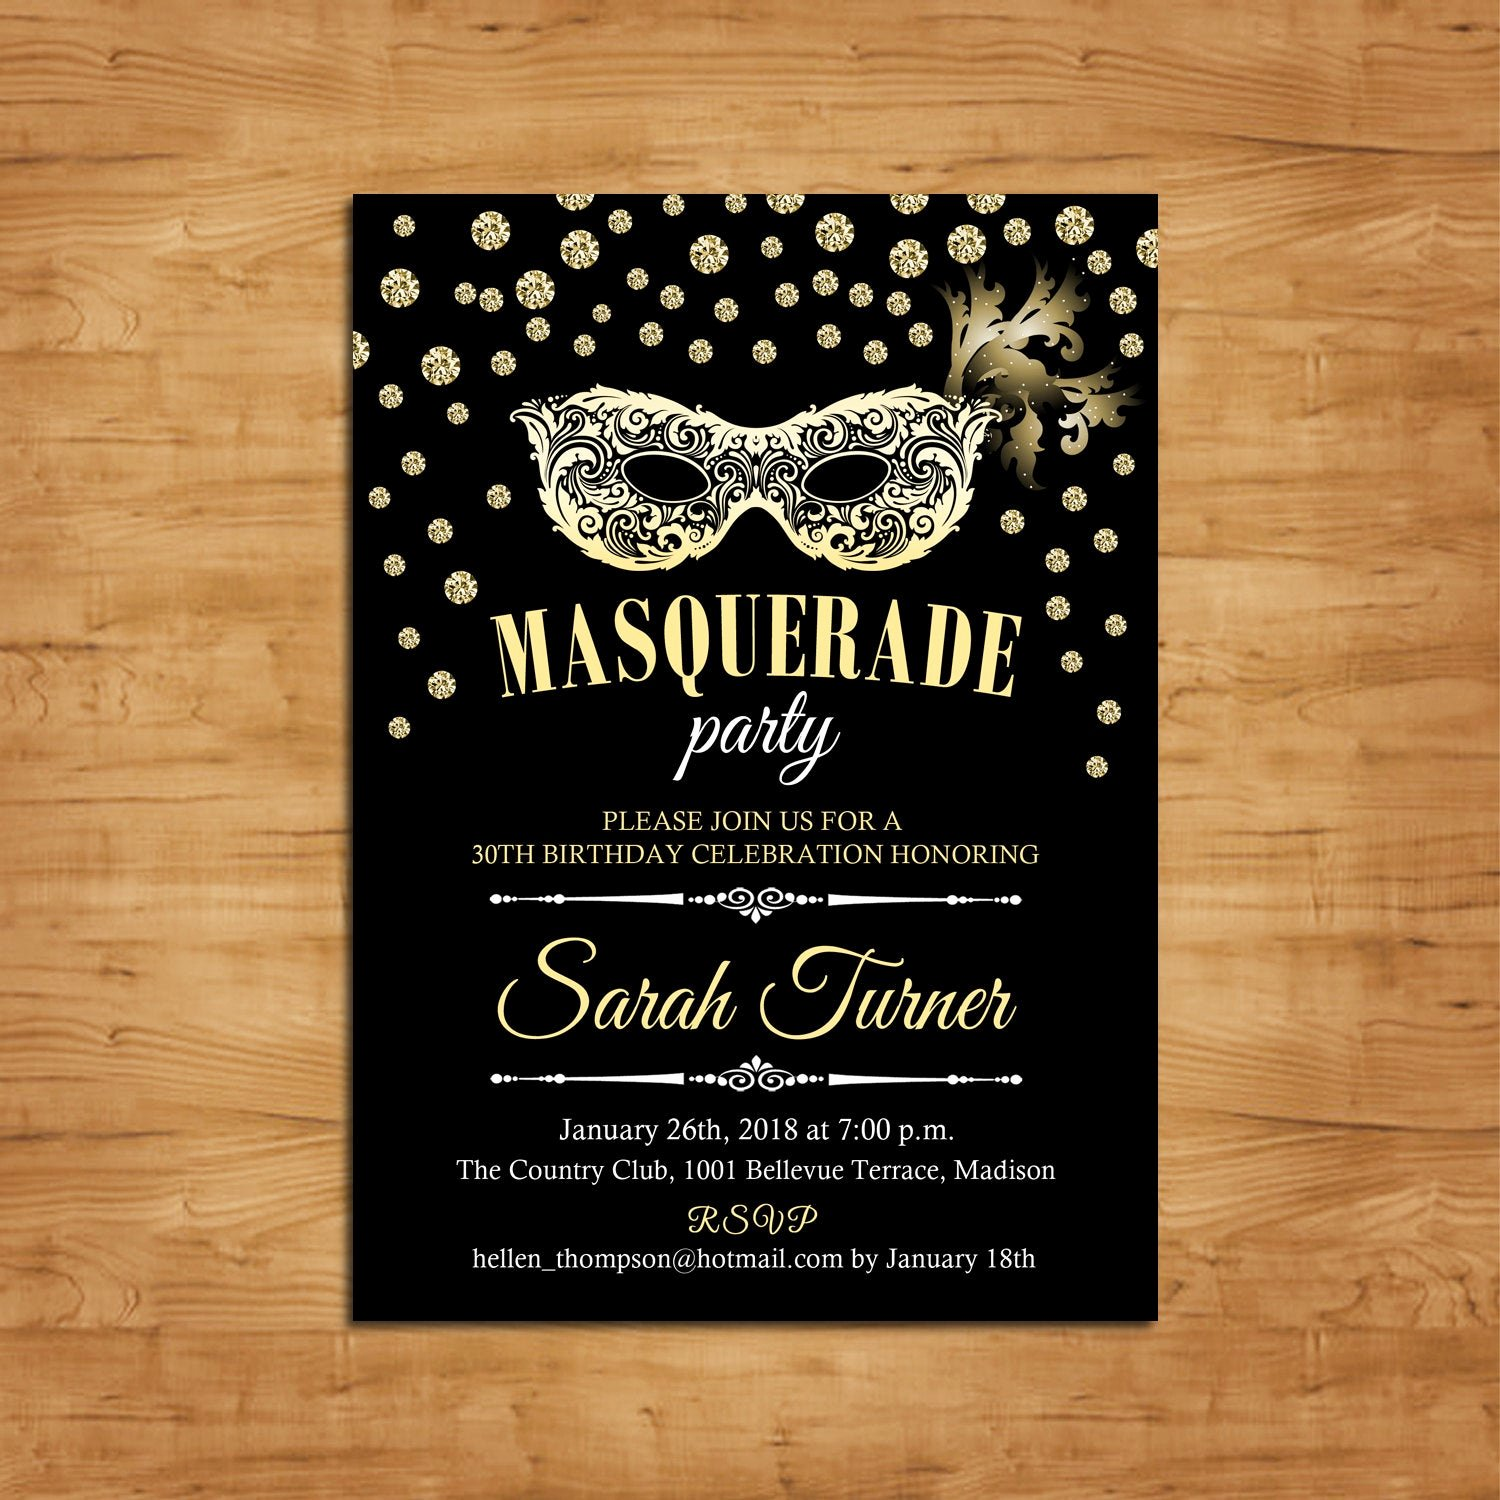 Masquerade Party Invitations Templates Free Best Of Masquerade Party Invitation Mardi Gras Mask Masquerade